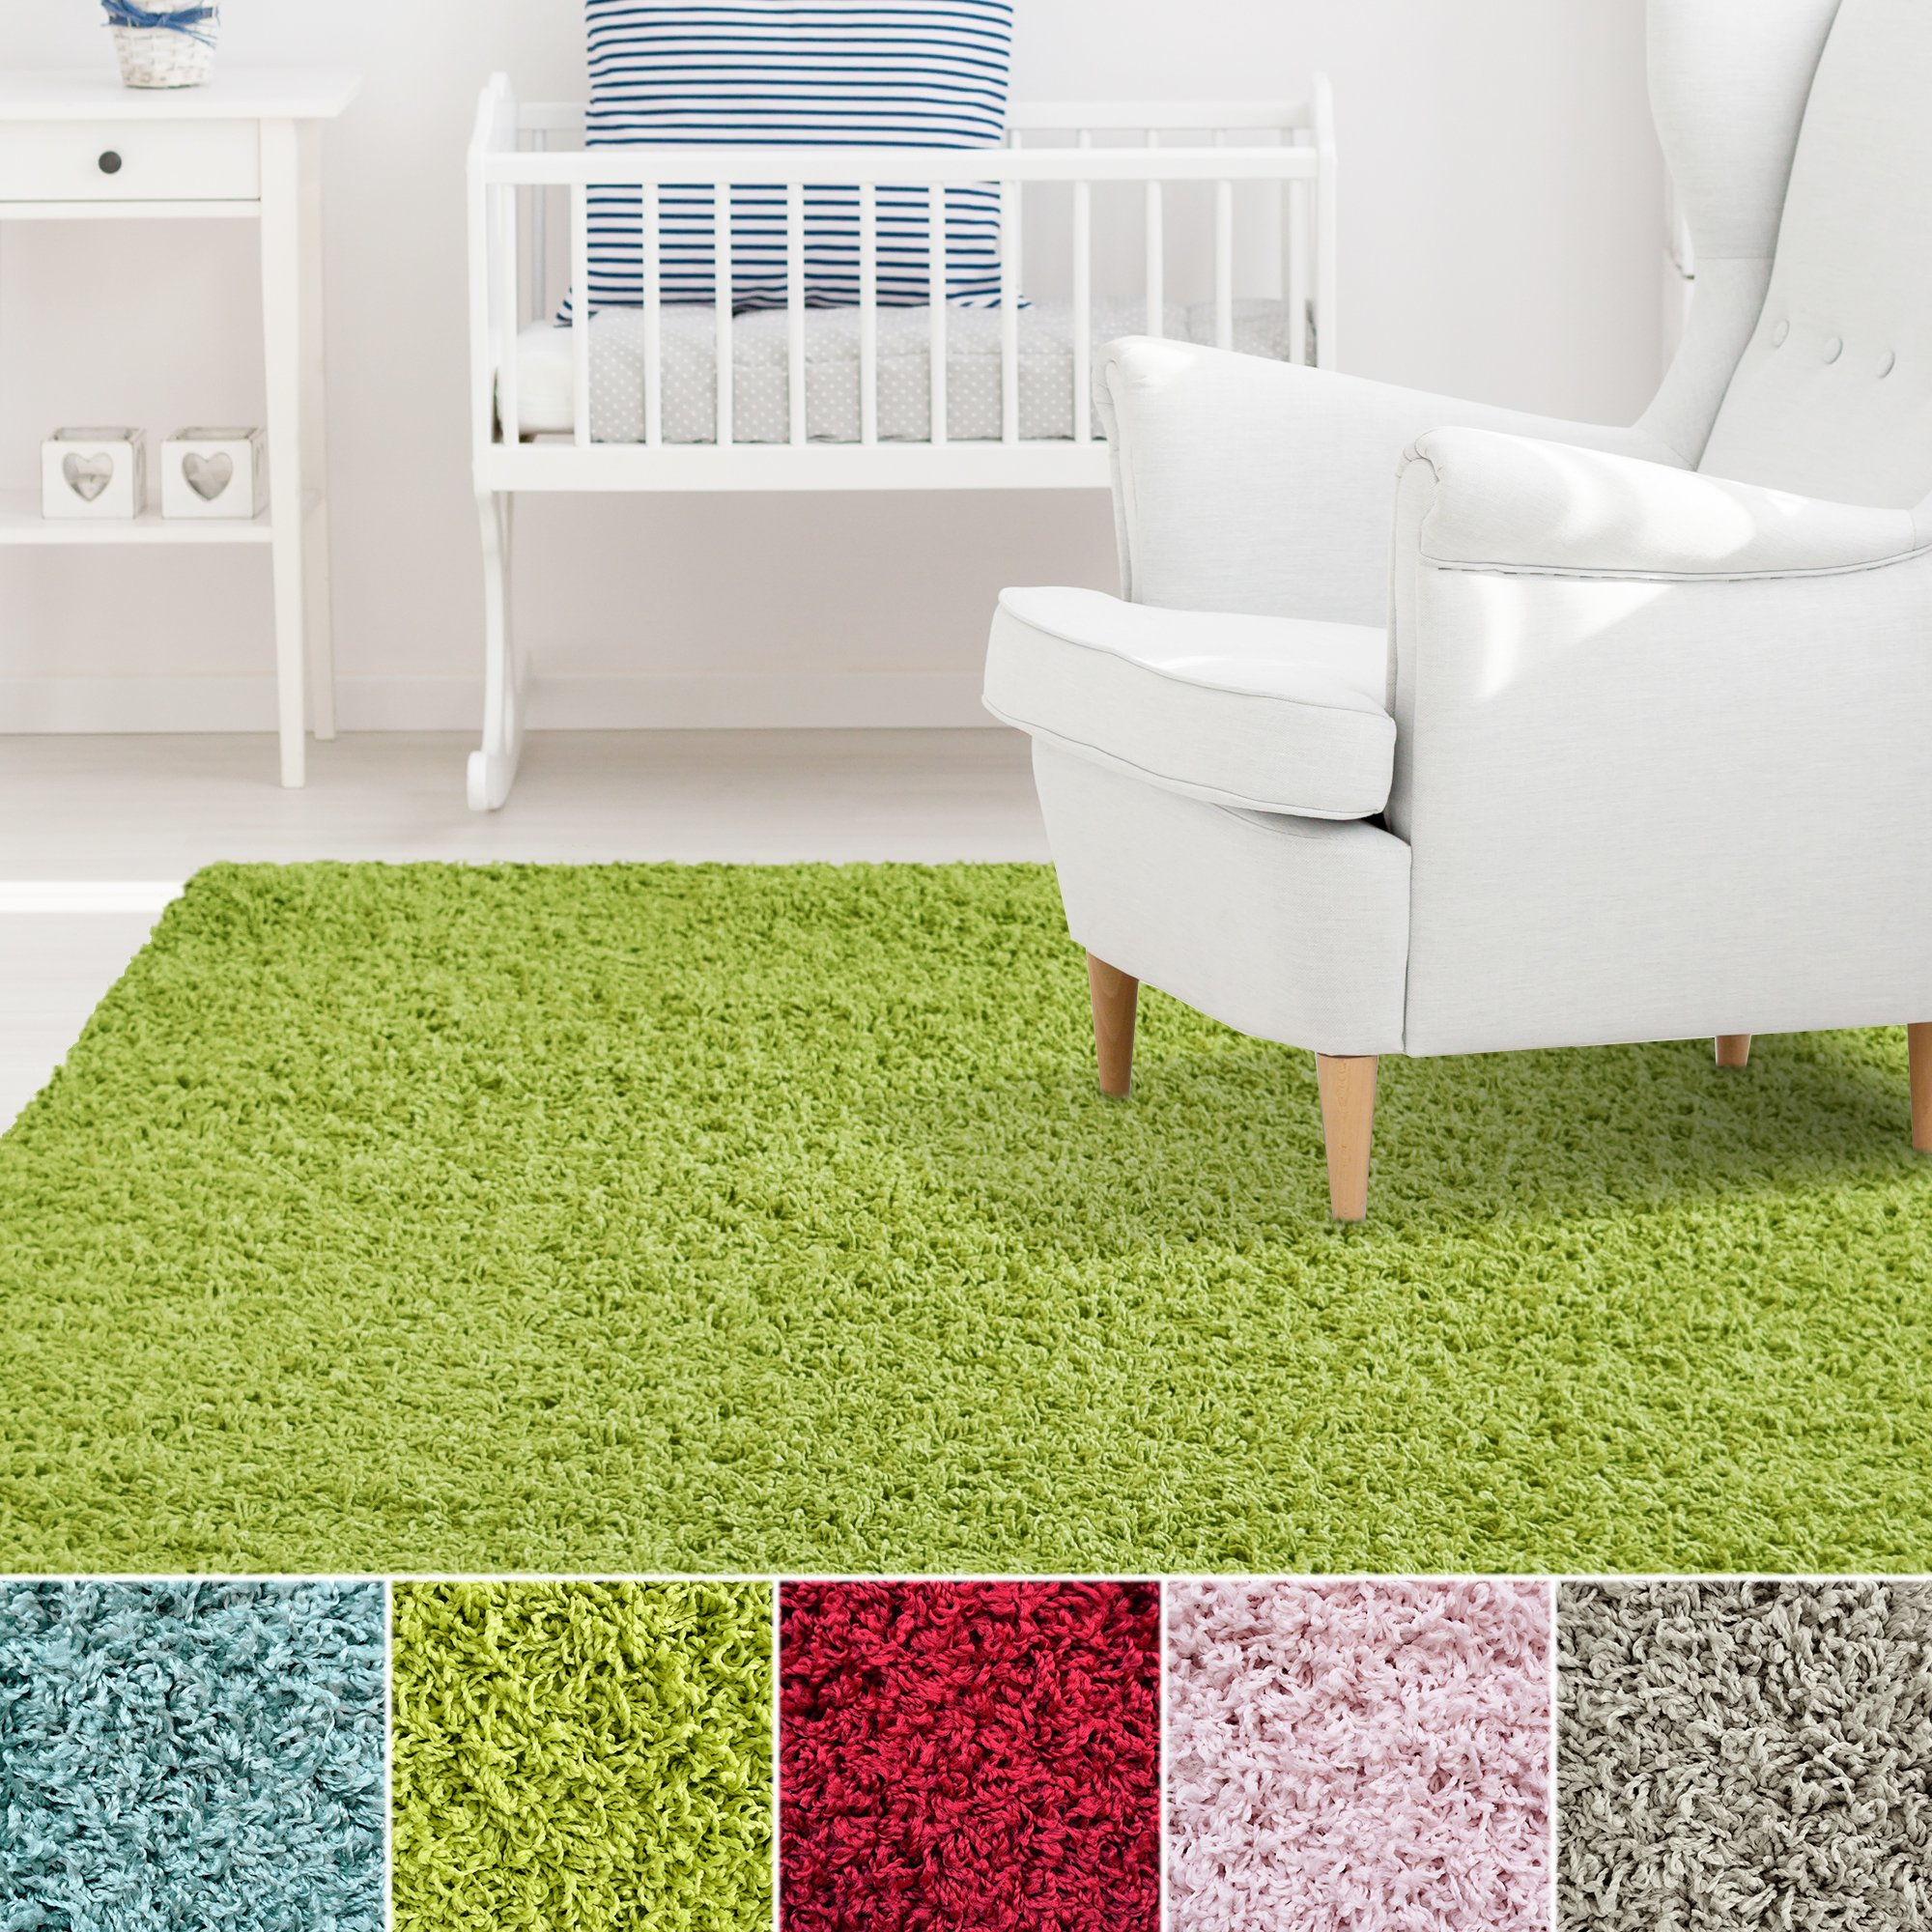 ICustomRug Affordable Shaggy Rug Dixie Cozy U0026 Soft Kids Shag Area Rug Solid  Color Lime Green